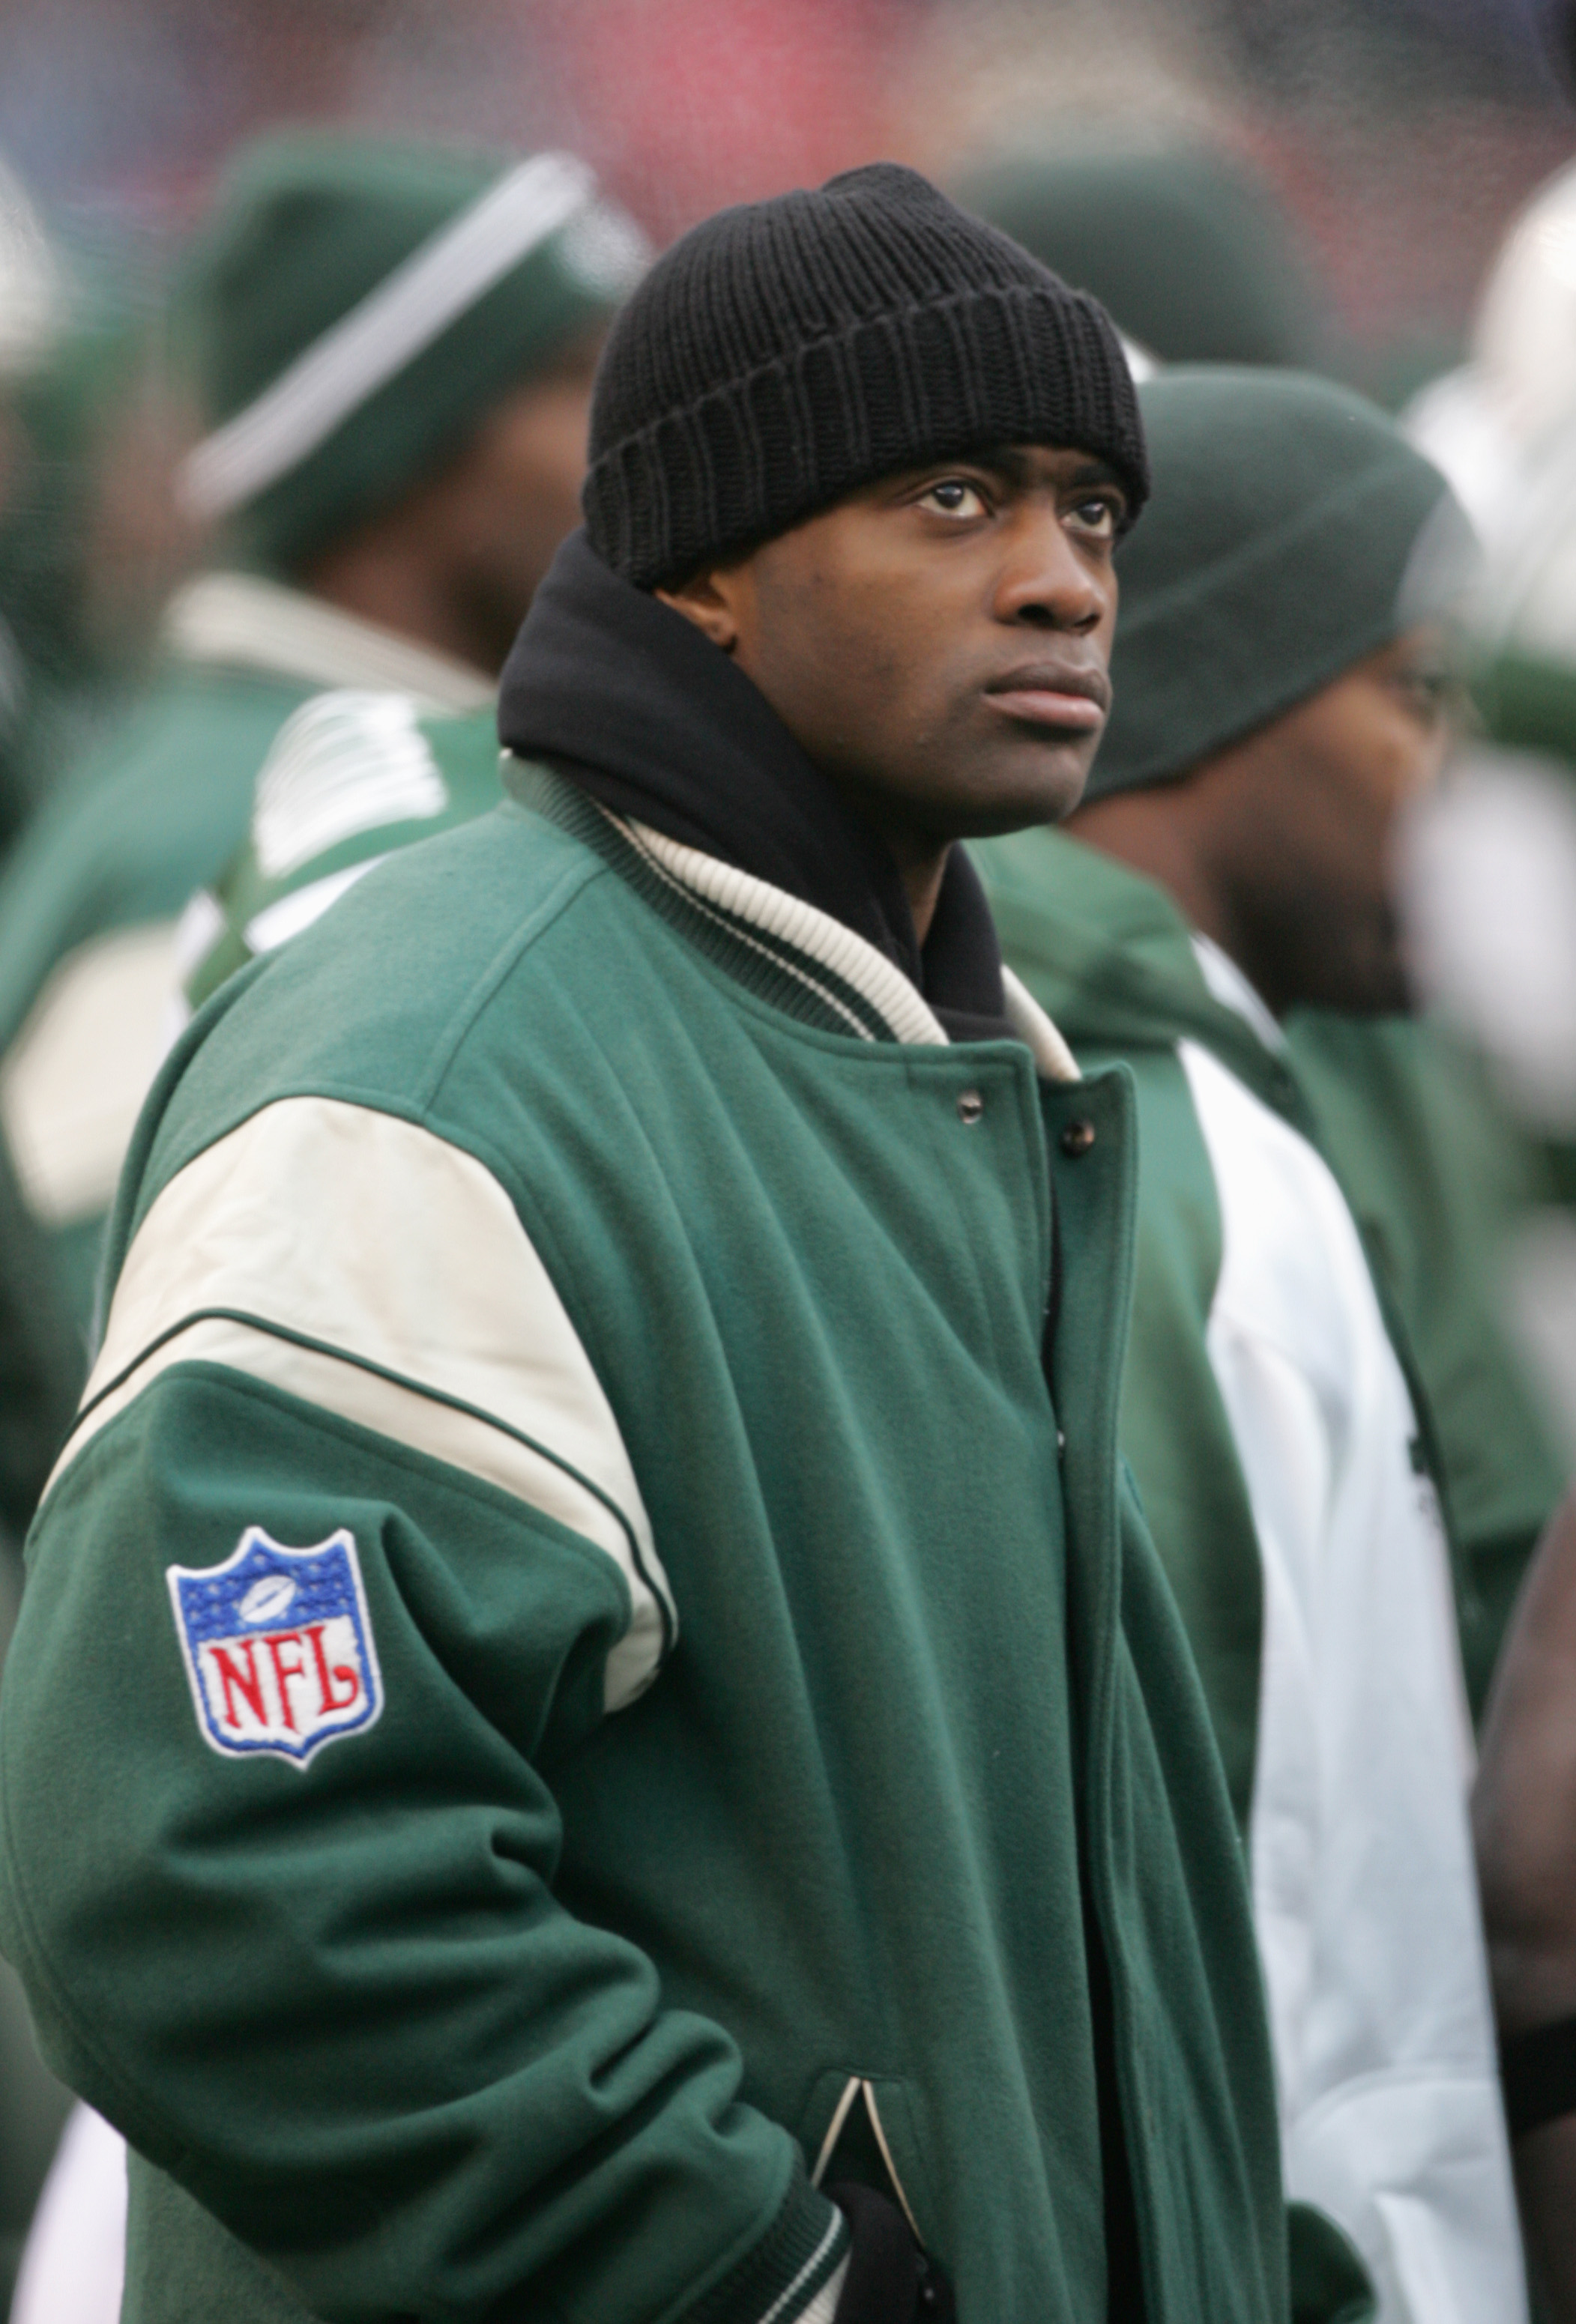 EAST RUTHERFORD, NJ - DECEMBER 11:  Curtis Martin #28 of the New York Jets looks on from the sidelines during the game against the Oakland Raiders on December 18, 2005 at Giants Stadium in East Rutherford, New Jersey.The Jets defeated the Raiders 26-10.(P